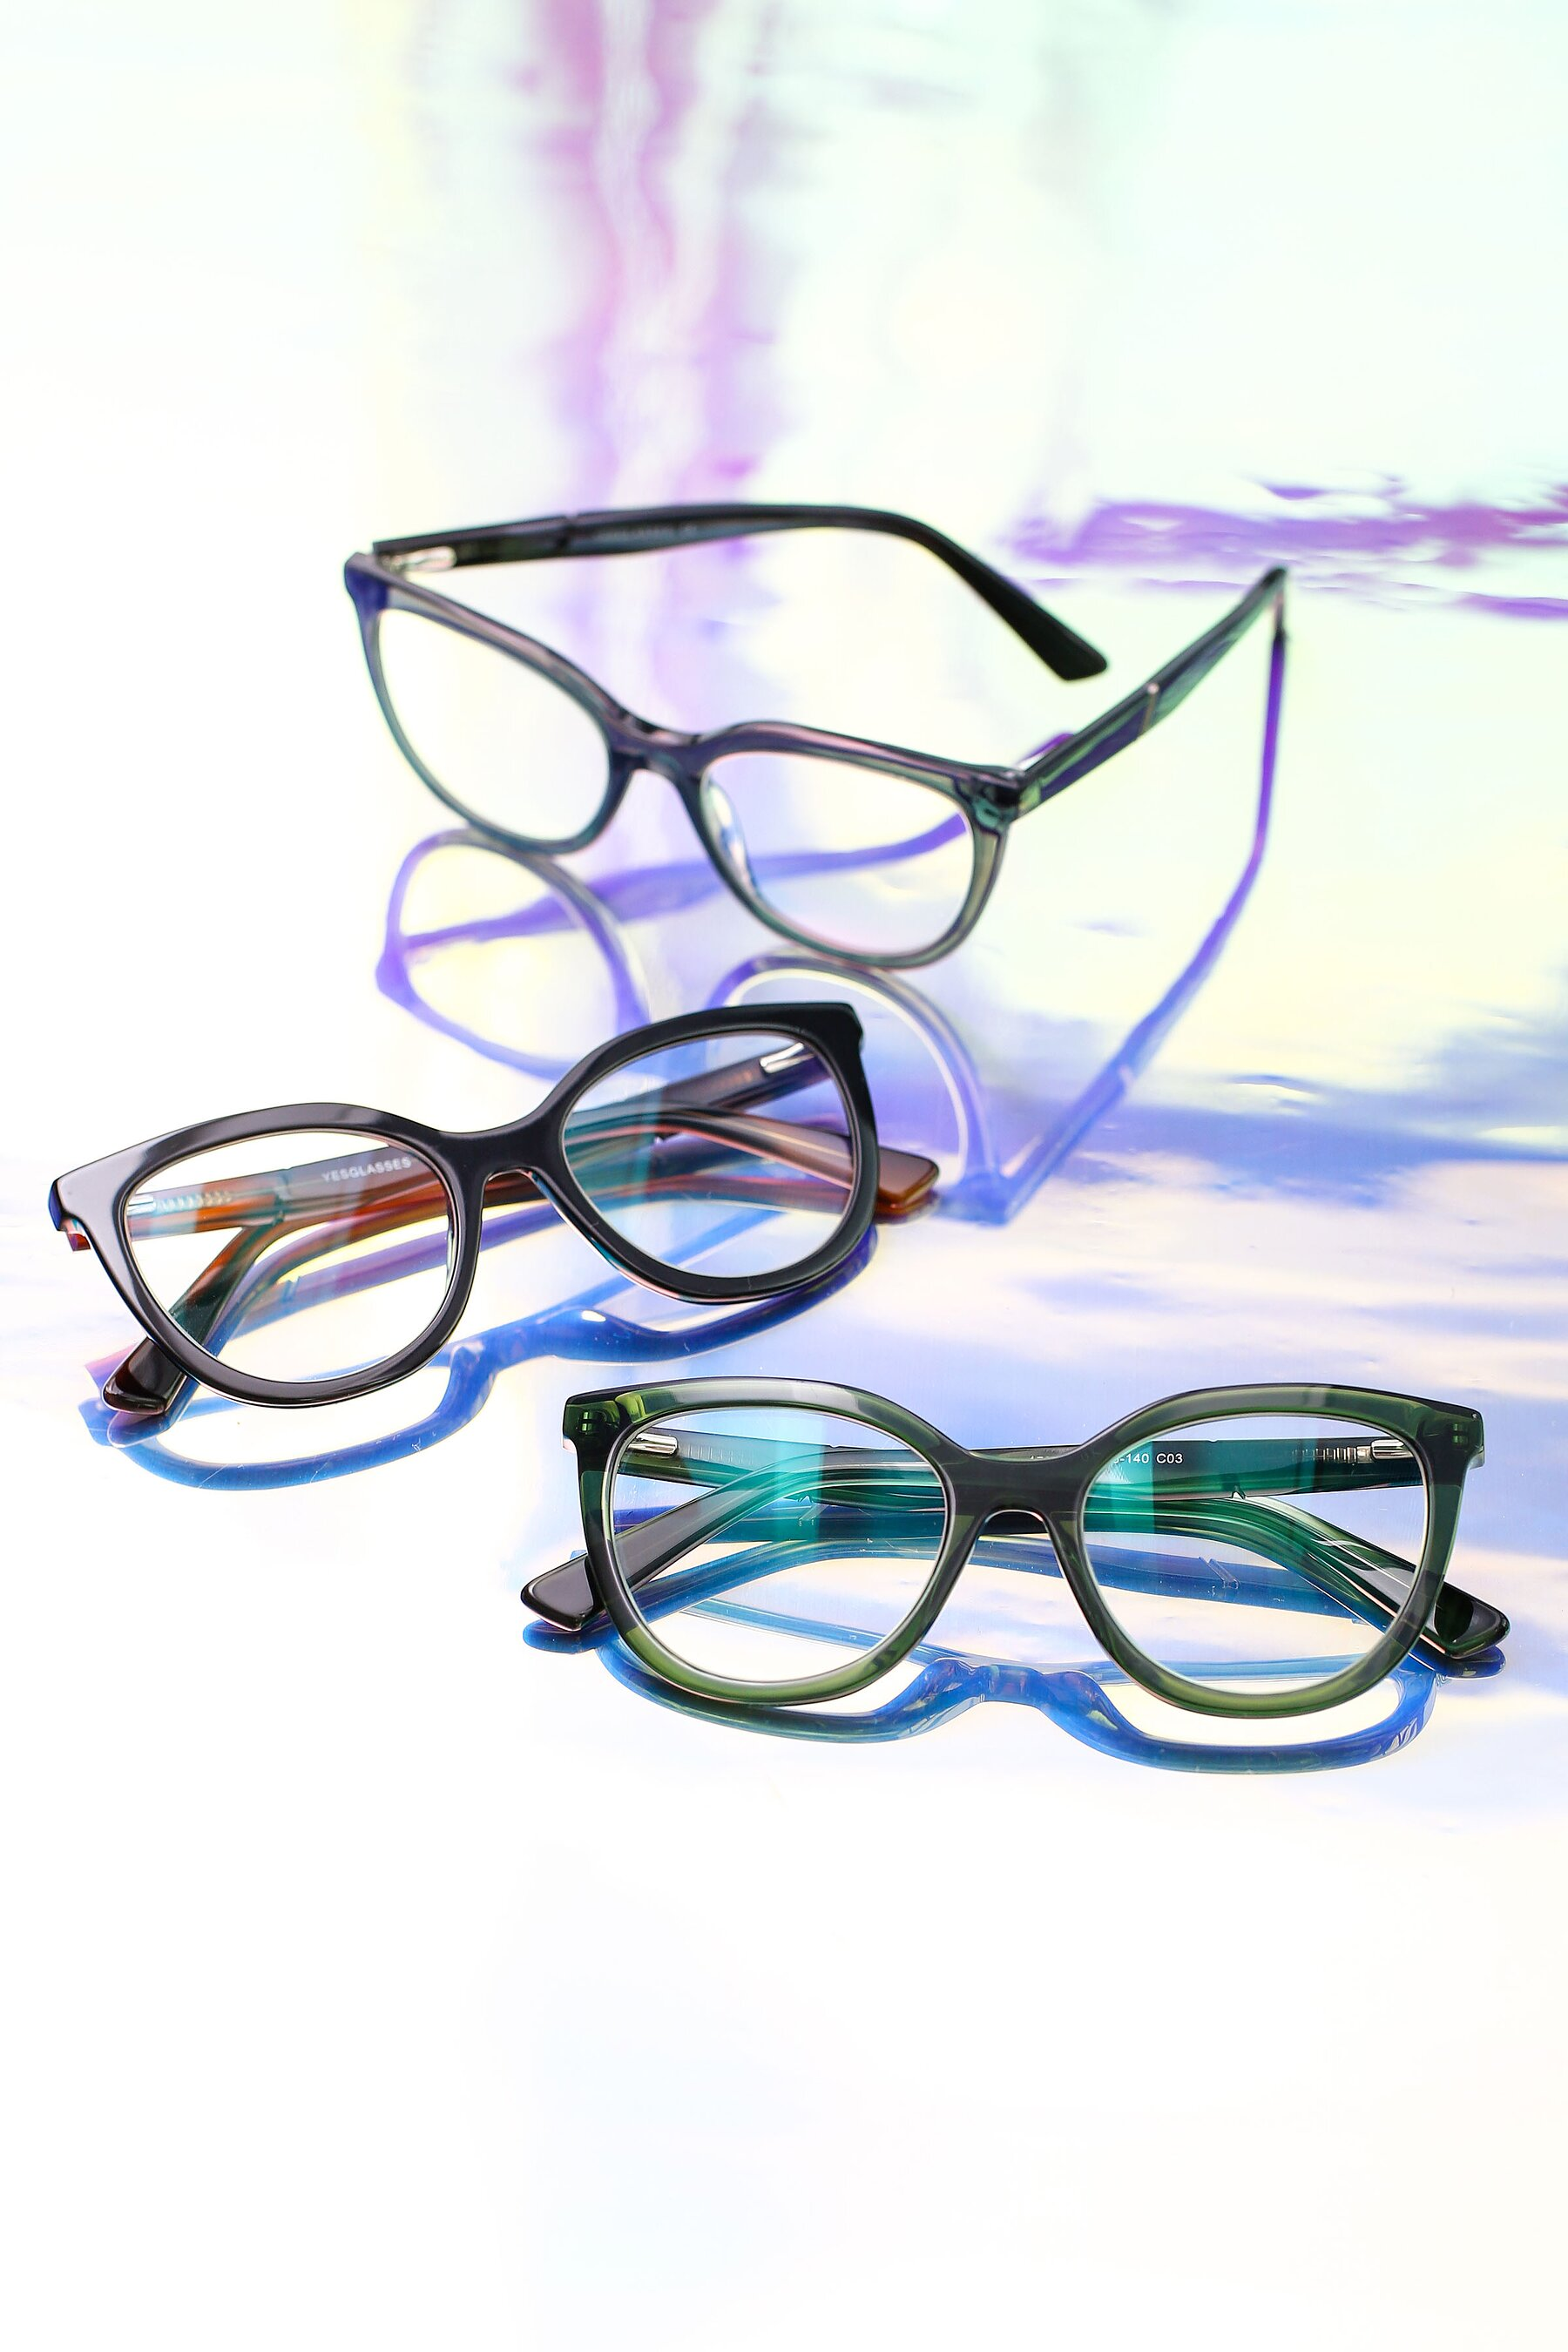 Lifestyle photography #5 of 17287 in Translucent Green with Clear Eyeglass Lenses